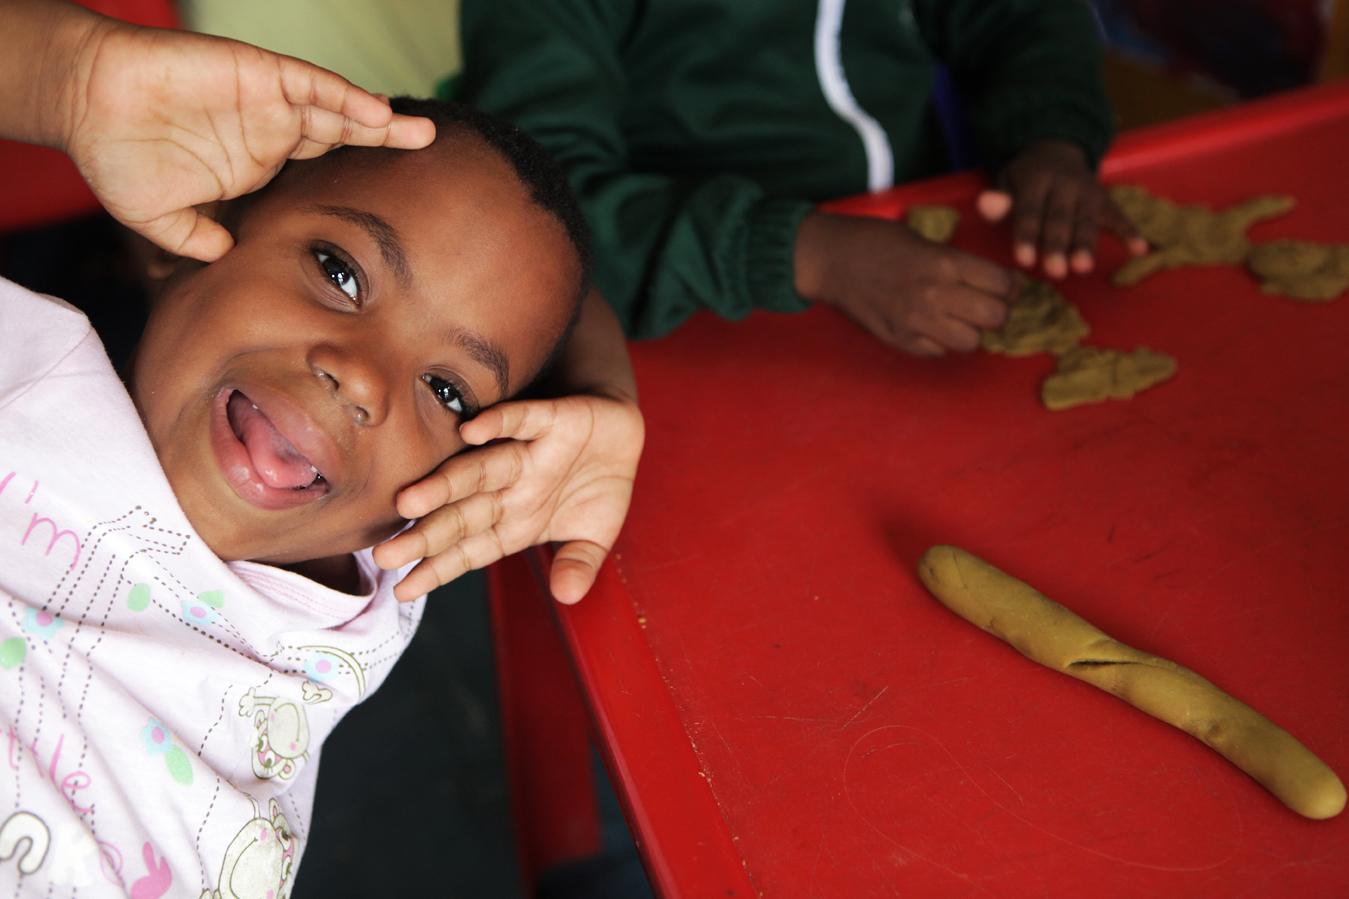 Owethu, 5, plays with Playdoh at the Little David Educare Centre in Wentworth, a township on the southern side of Durban, in KwaZulu-Natal province. Over 92% of preschool children in KwaZulu-Natal attend unregistered ECD centres (crèches). Save the Children, operating in KZN for over 50 years, recognised the need to support crèches in the area with better management skills and access to learning materials, as well as running the crèche forums and supporting crèches with registration to become ECD centres.